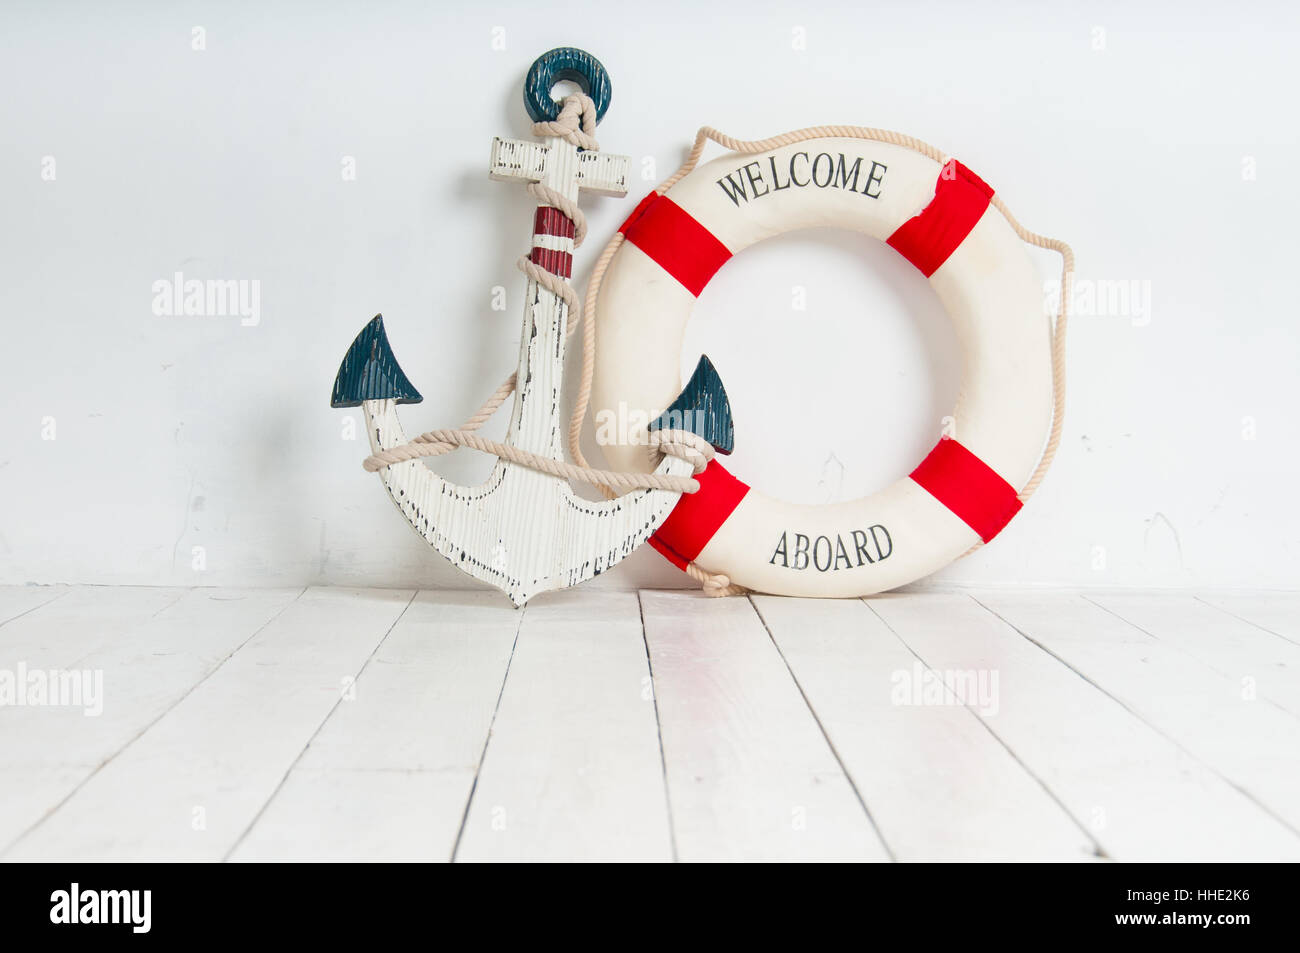 welcome aboard nautical life